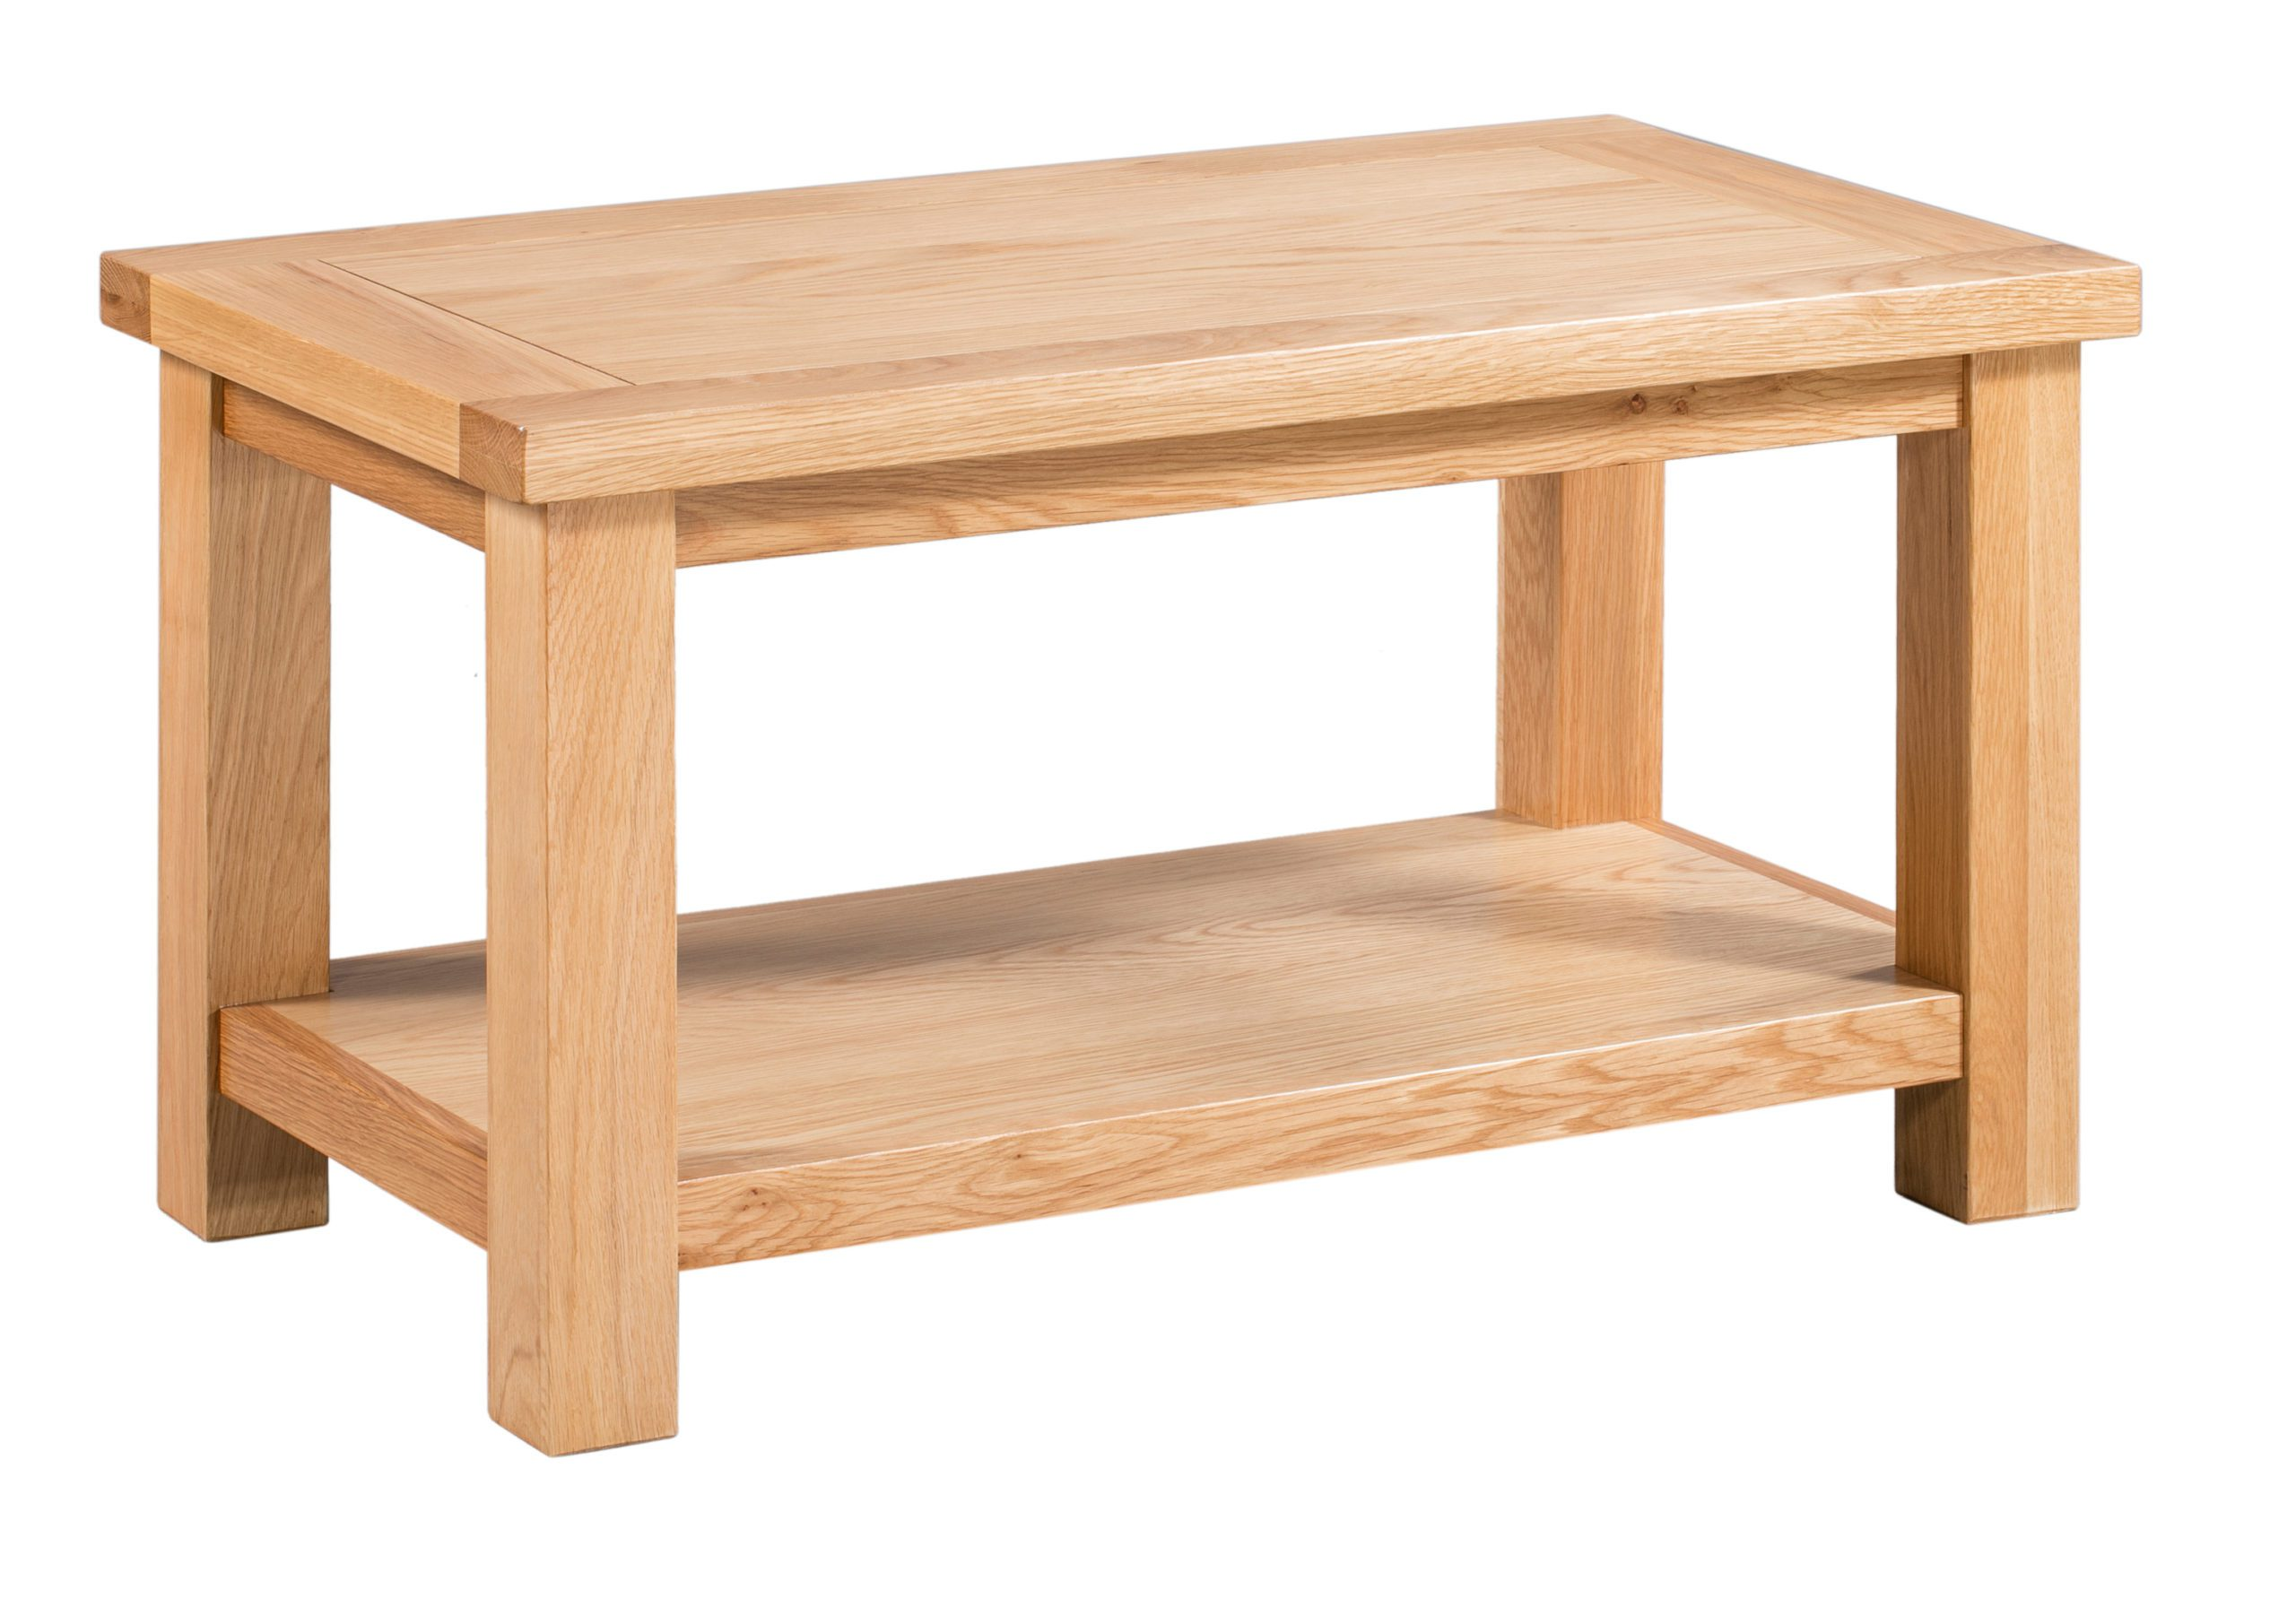 dorset oak small coffee table with shelf edmunds and clarke furniture